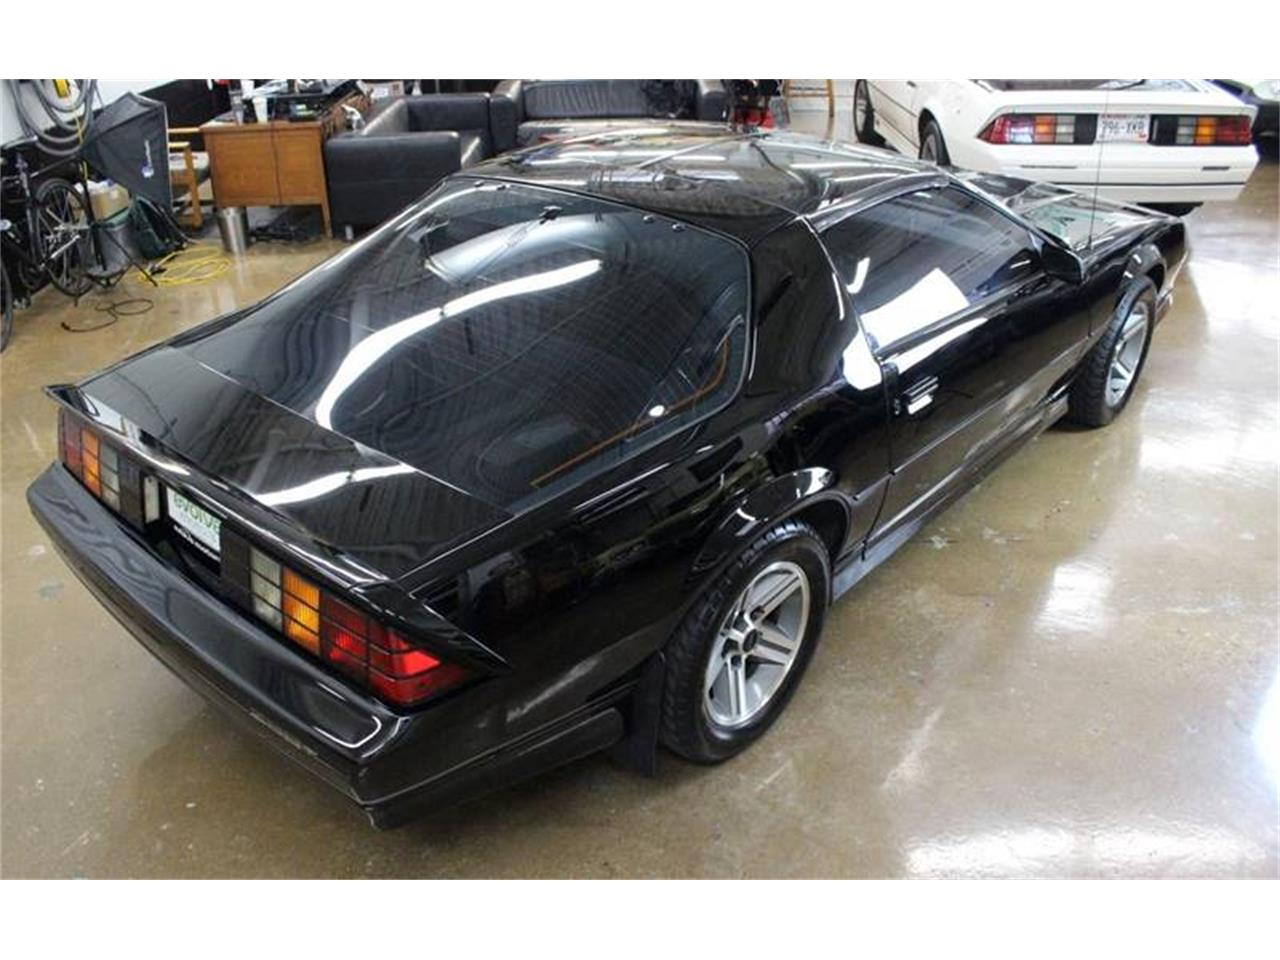 Large Picture of '85 Camaro located in Illinois - $18,900.00 - MB2C